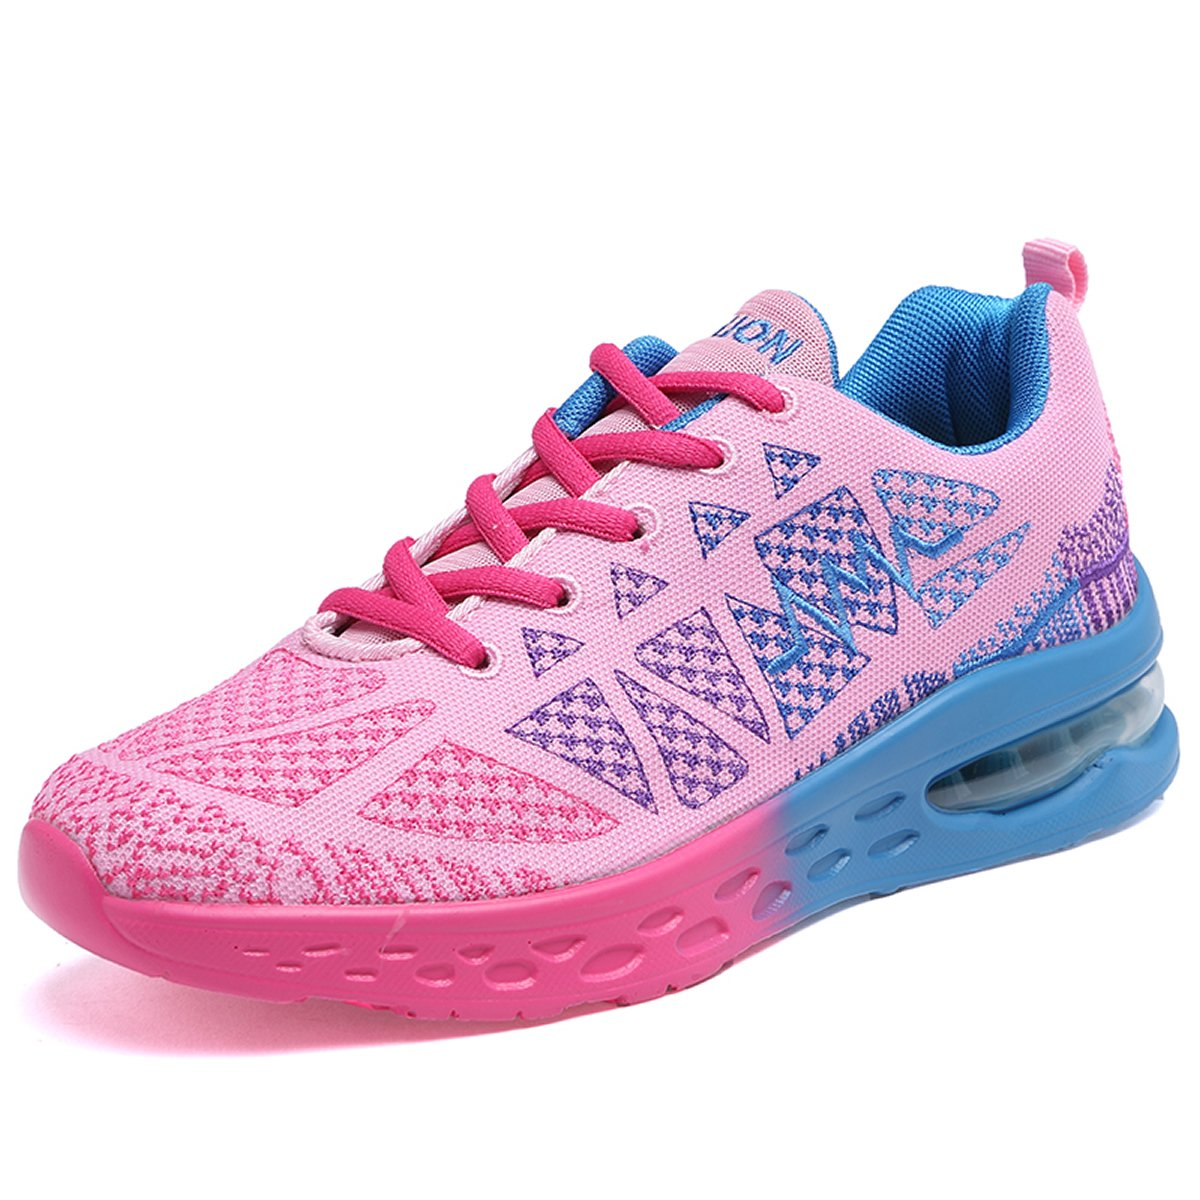 JARLIF Women's Athletic Running Sneakers Fashion Sport Air Fitness Workout US5.5-10 Gym Jogging Walking Shoes US5.5-10 Workout B076D21DRD 7.5 B(M) US Pink a4e0bd